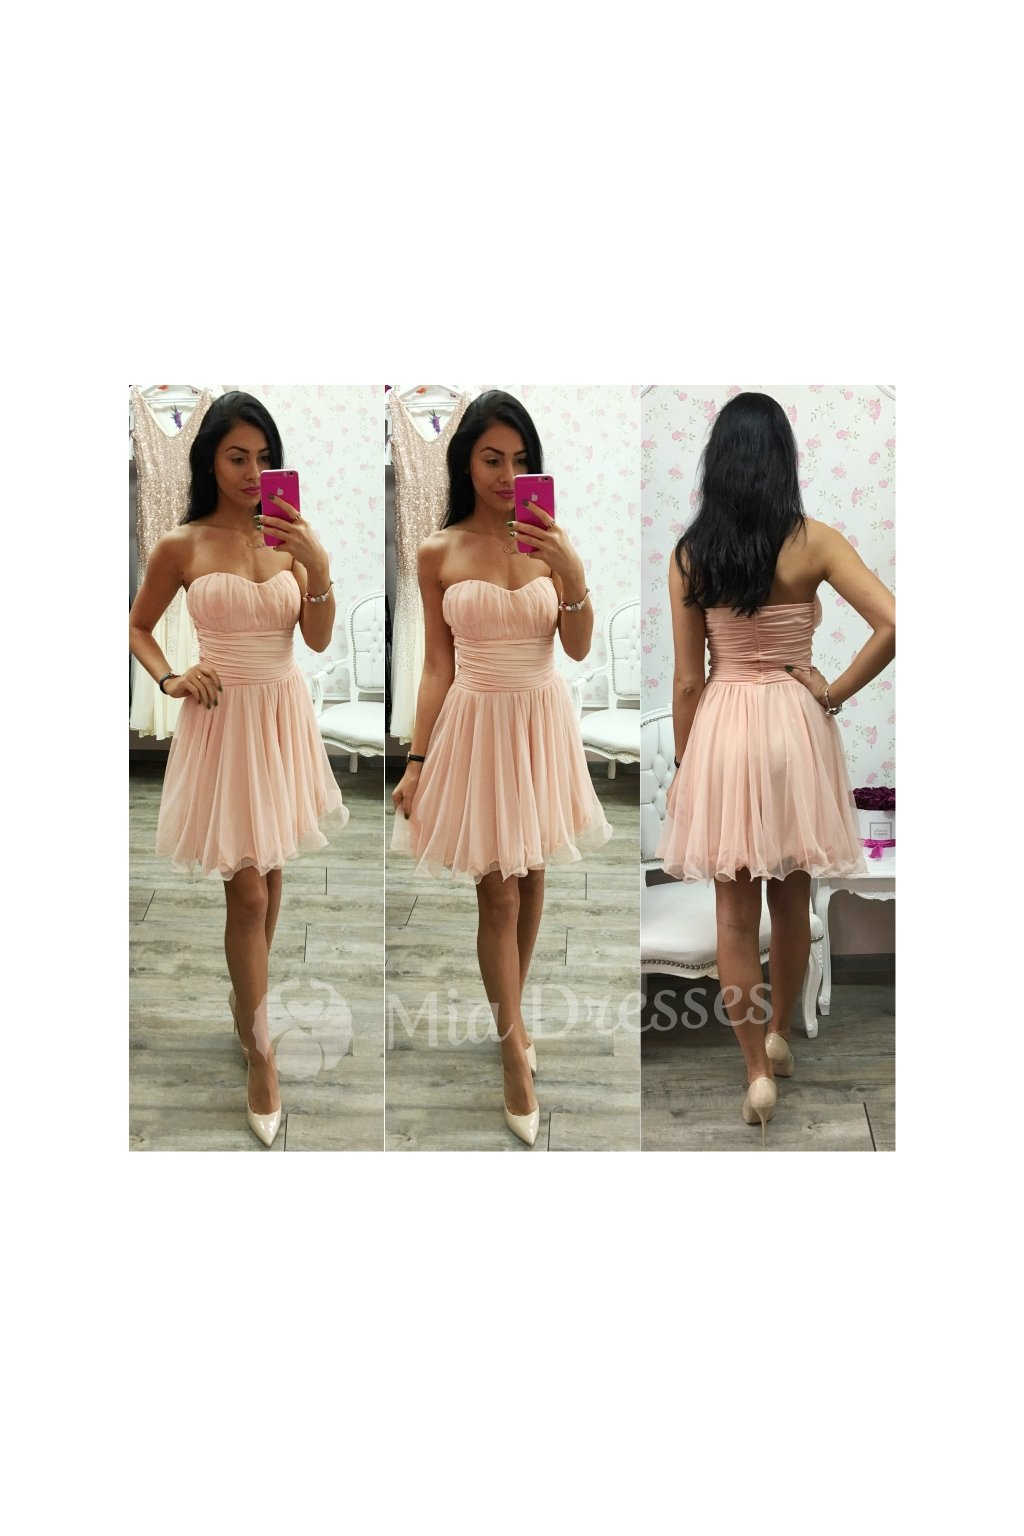 Powder formal dress